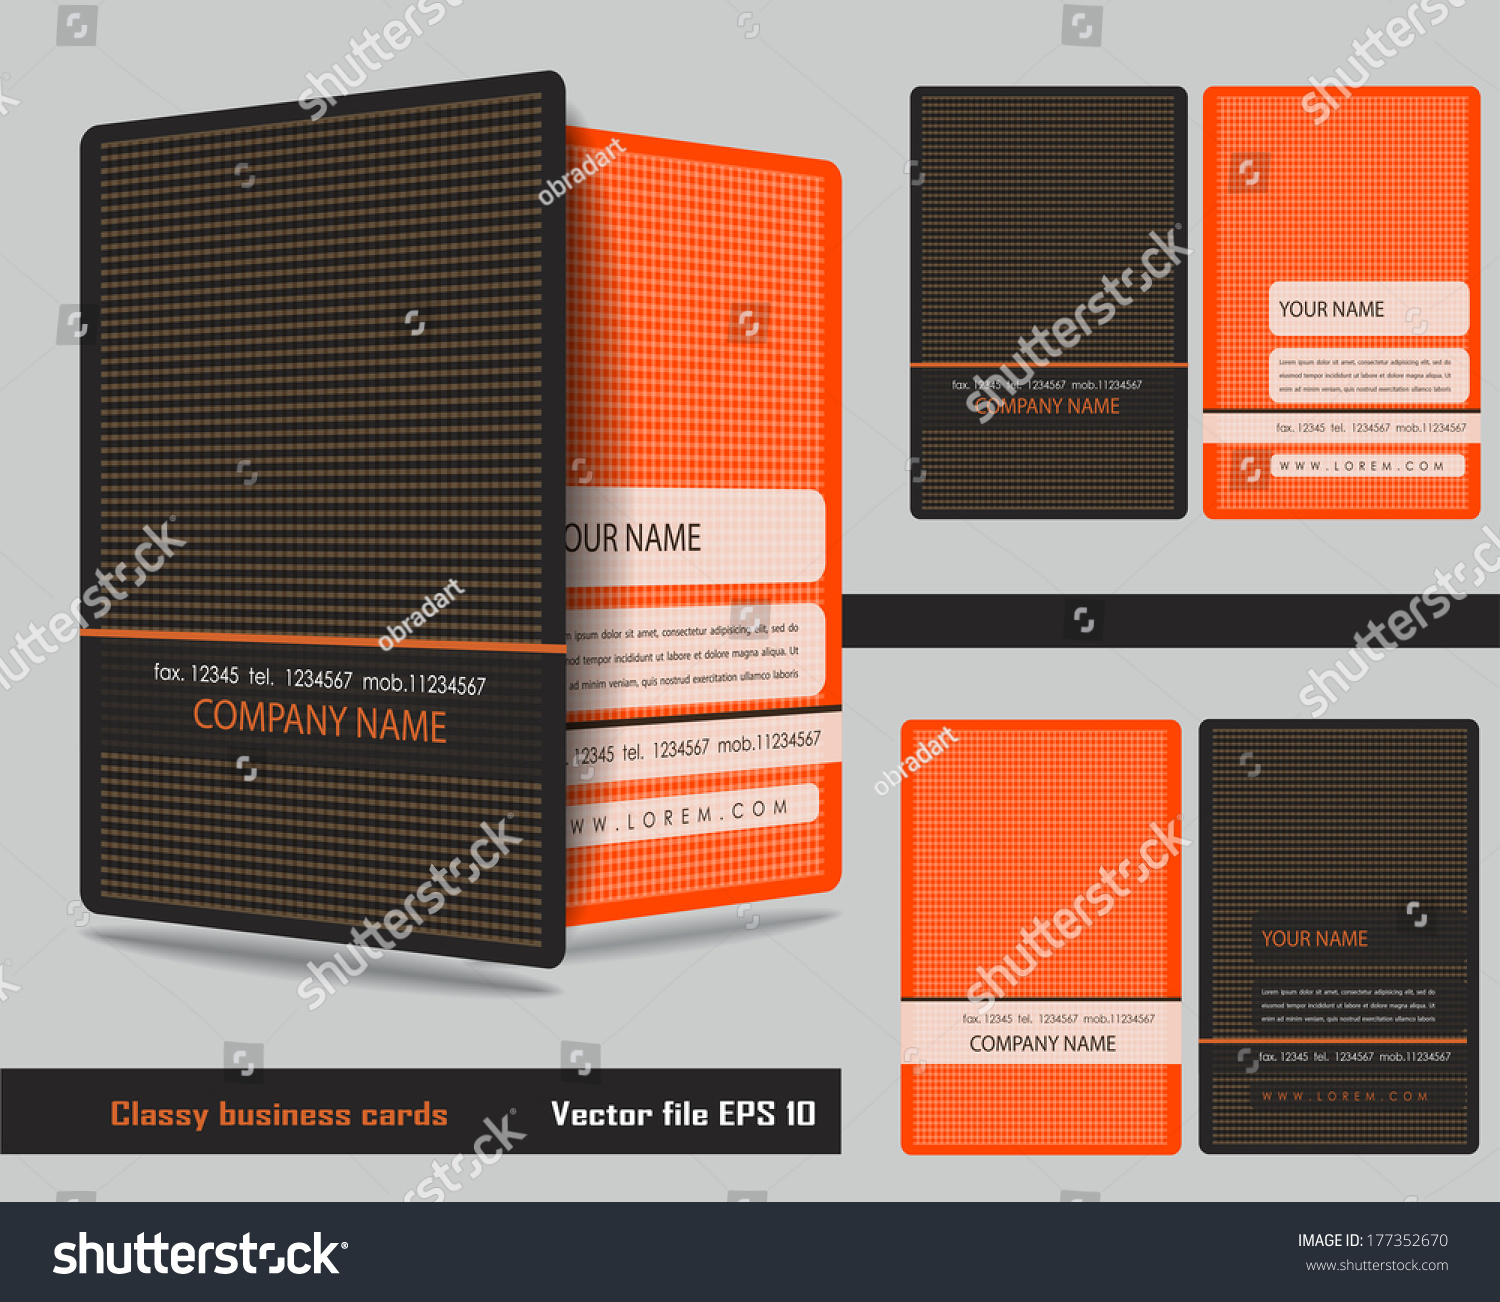 Classy Business Cards Stock Vector 177352670 - Shutterstock